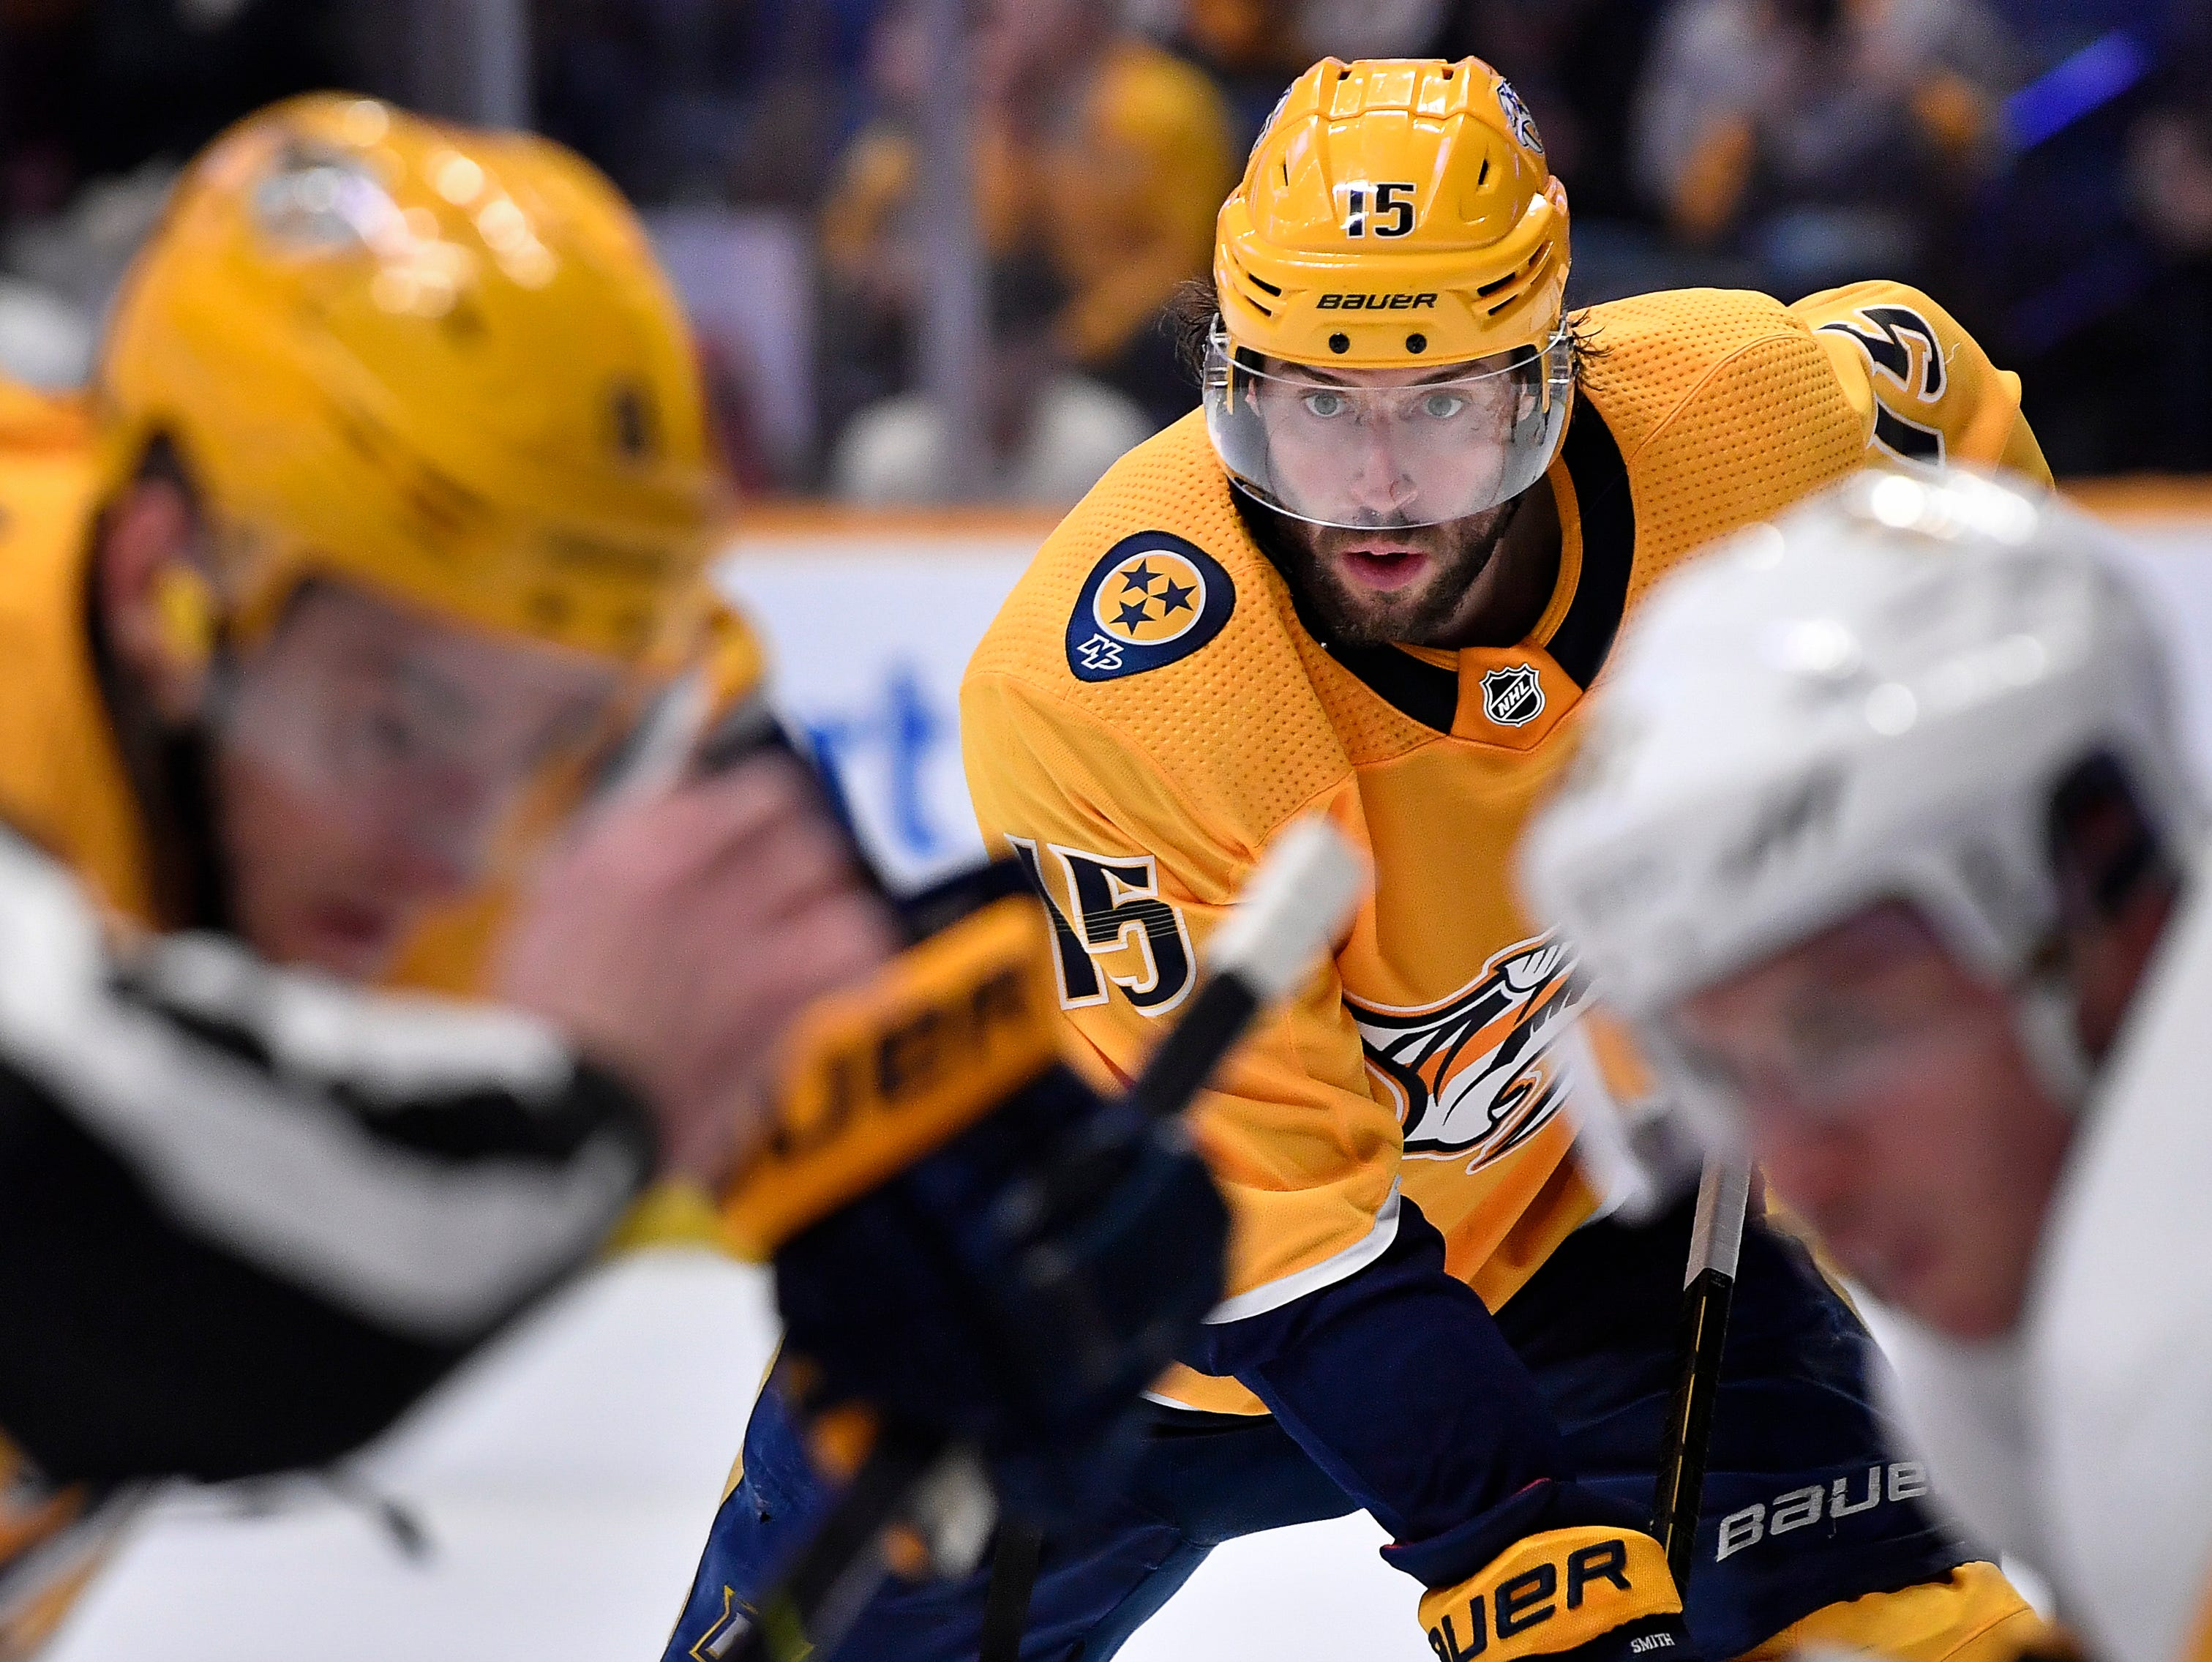 Predators right wing Craig Smith (15) waits for play to begin during the third period against the Penguins  at Bridgestone Arena Thursday, March 21, 2019 in Nashville, Tenn.